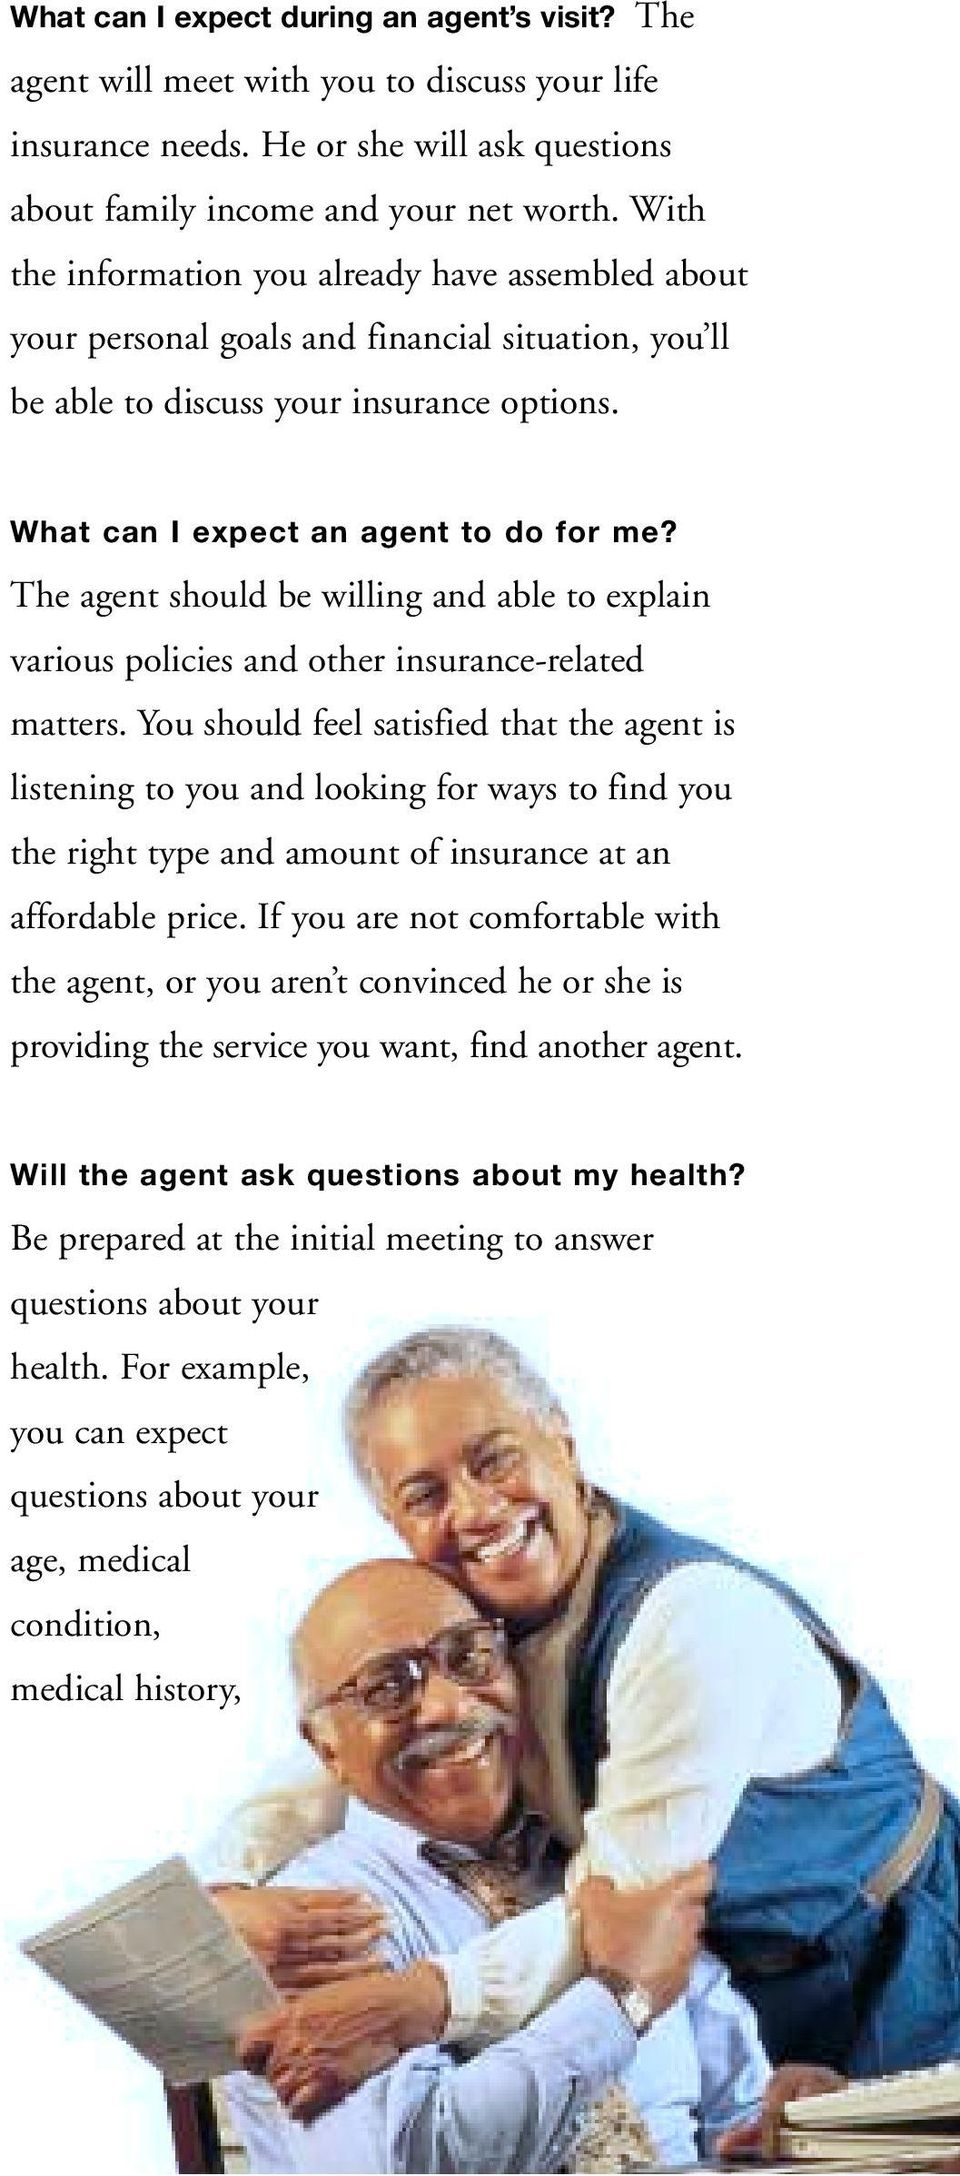 The agent should be willing and able to explain various policies and other insurance-related matters.